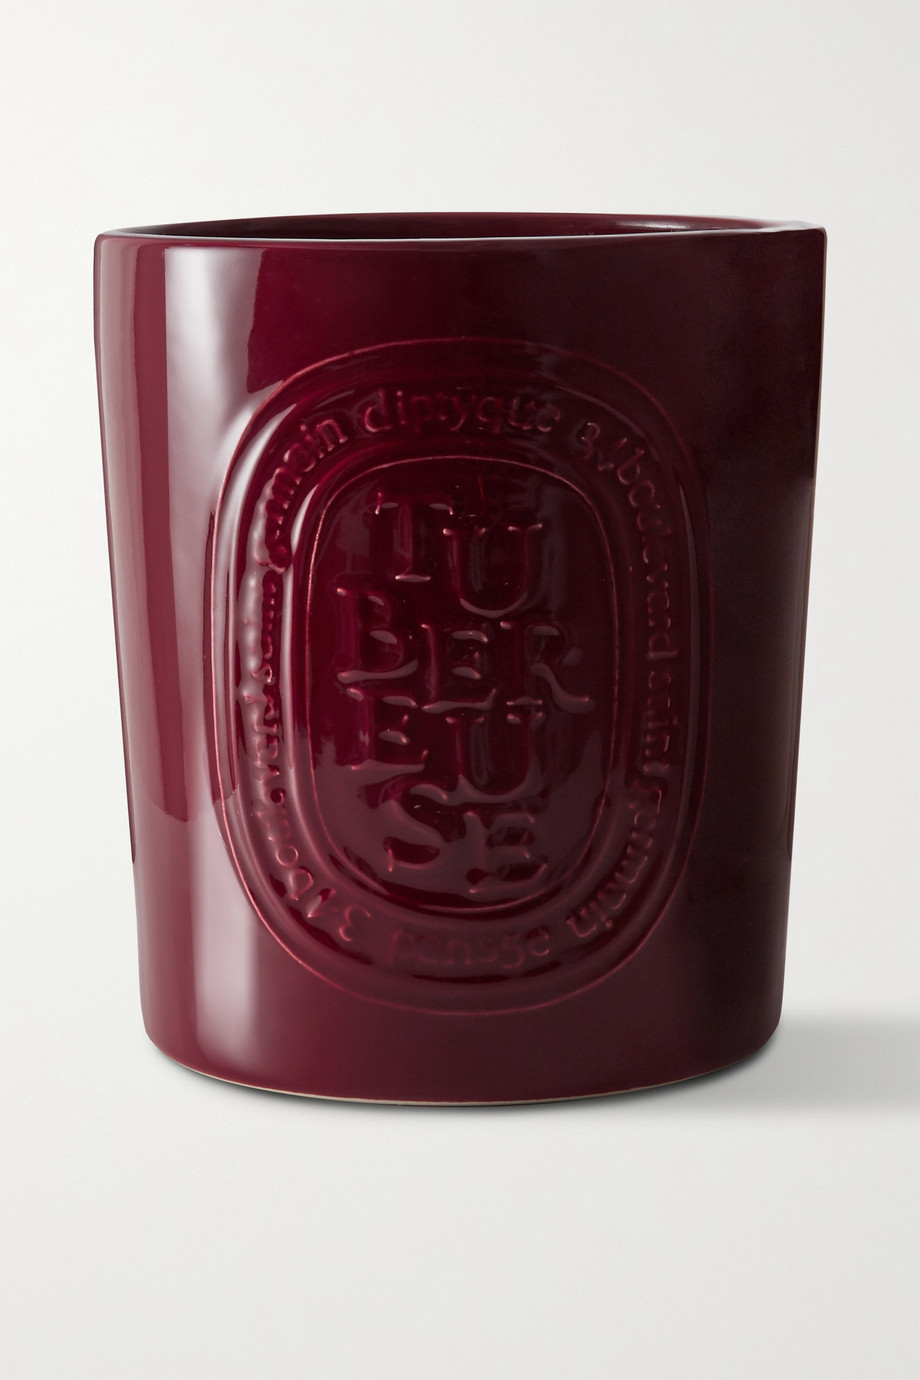 DIPTYQUE Tubéreuse scented candle, 1500g